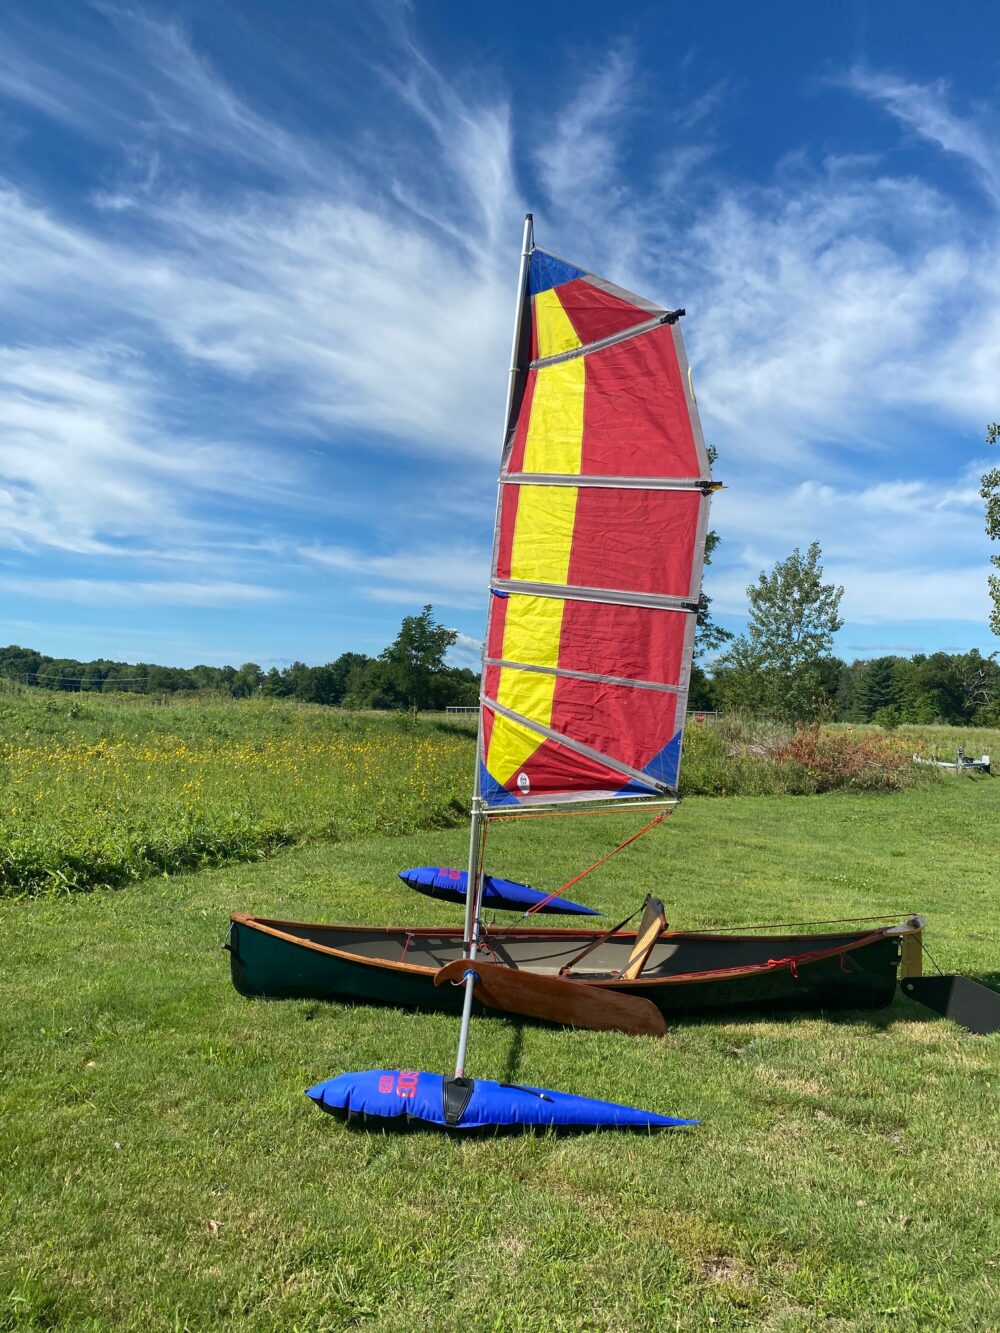 12' Used Solo Pack Boat w/sail rig